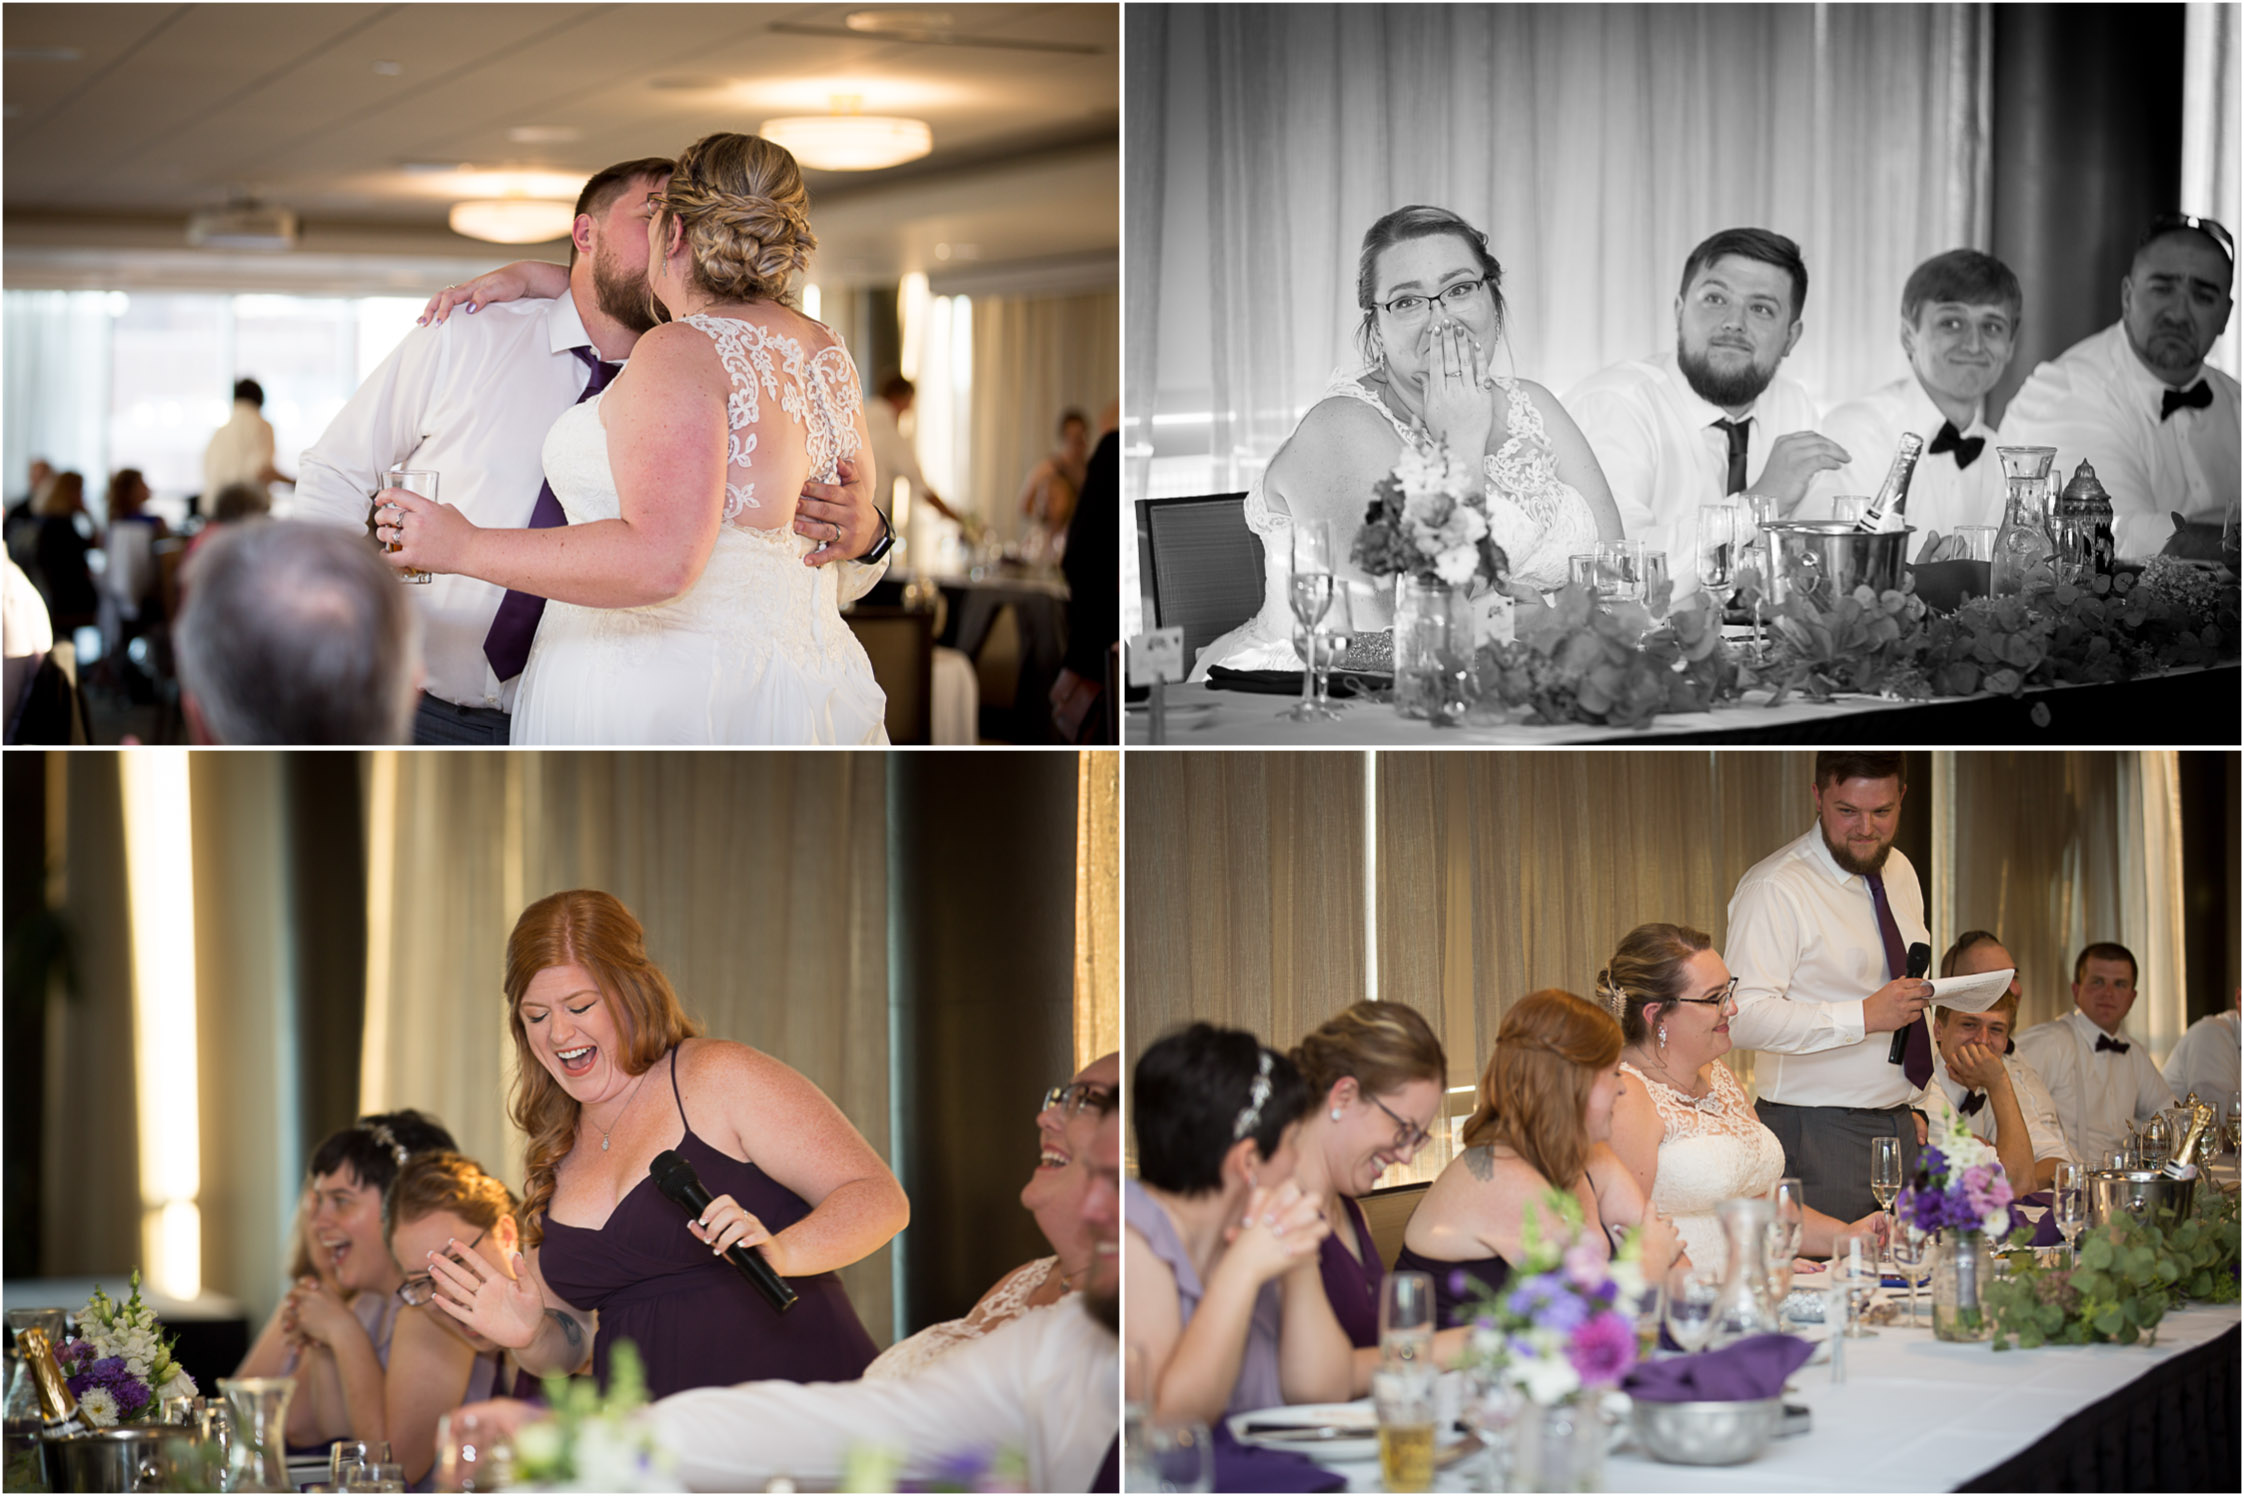 24-university-of-minnesota-campus-club-wedding-photographer-reception-fun-real-moments-toasts-kisses-mahonen-photography.jpg